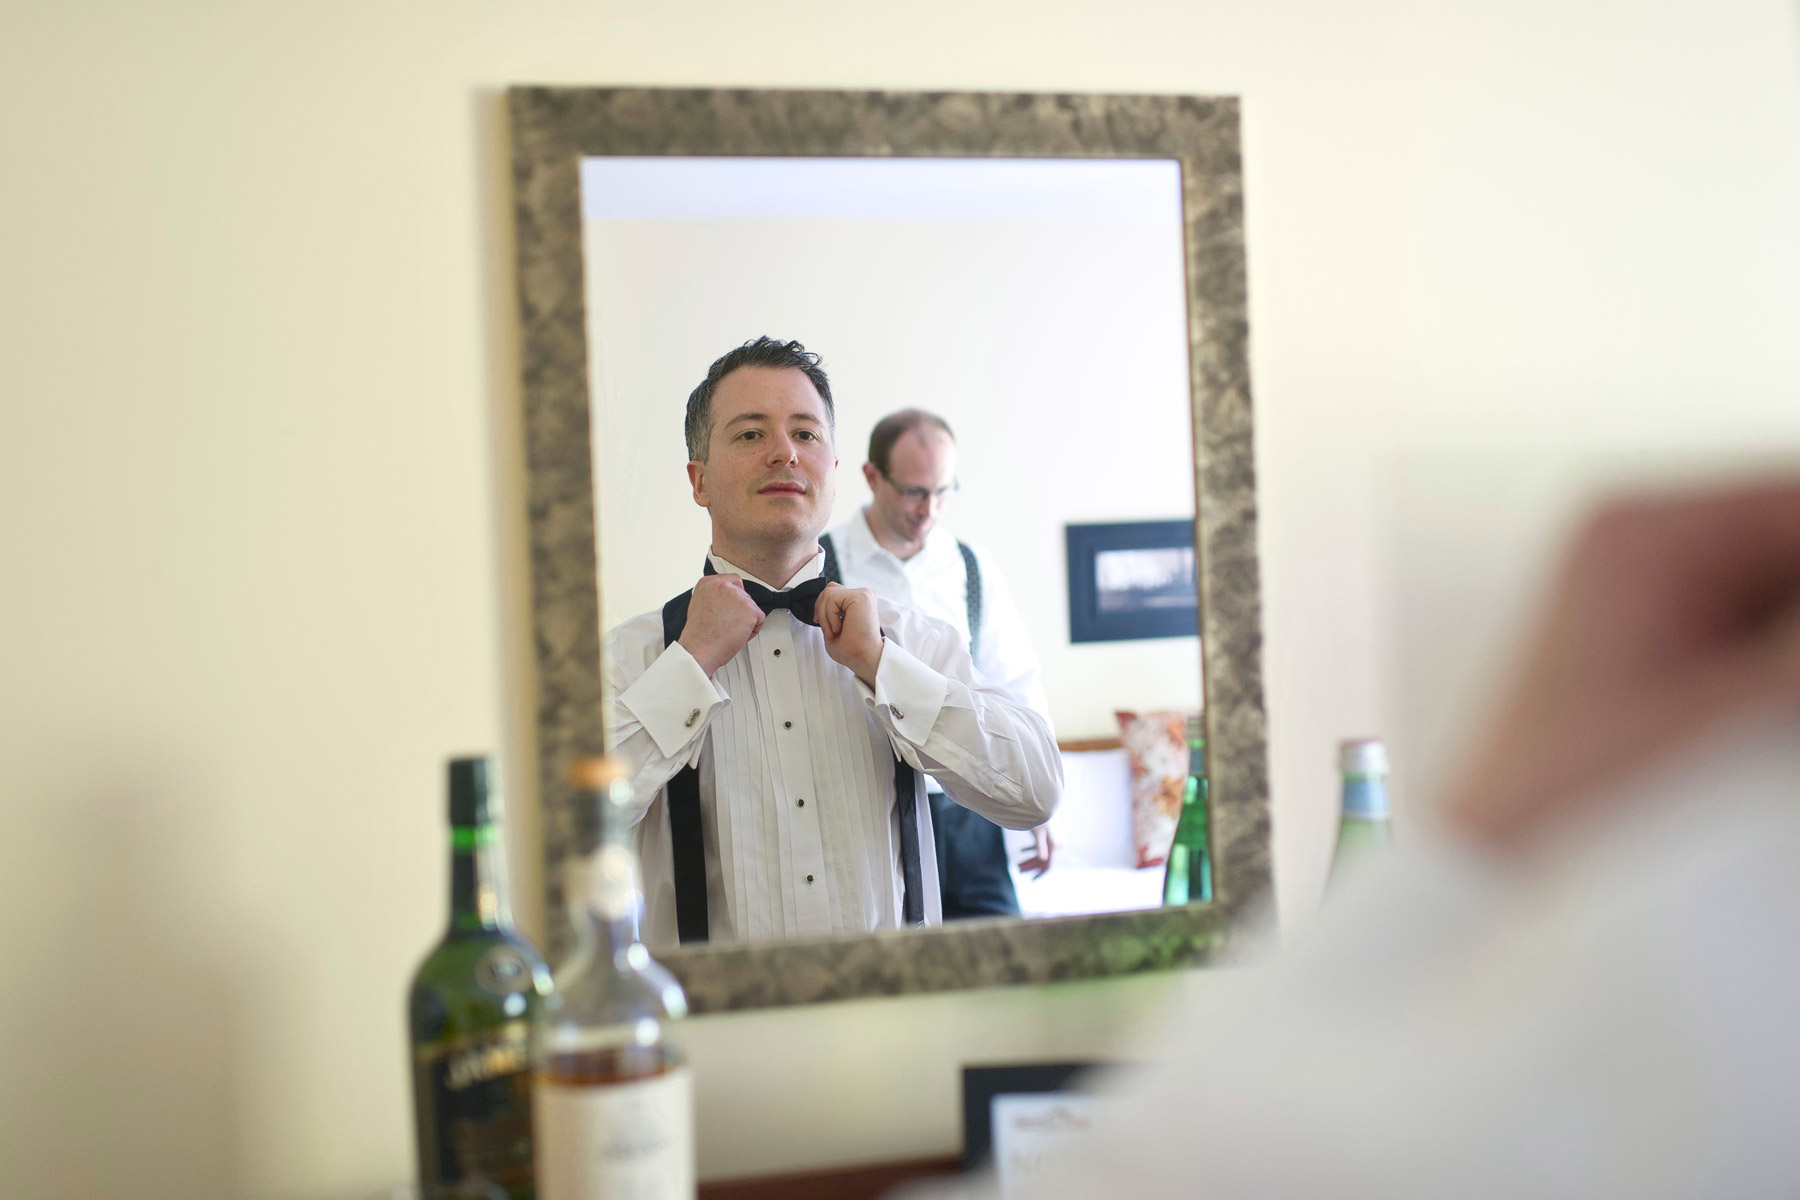 Groom tying his bow tie getting ready for wedding